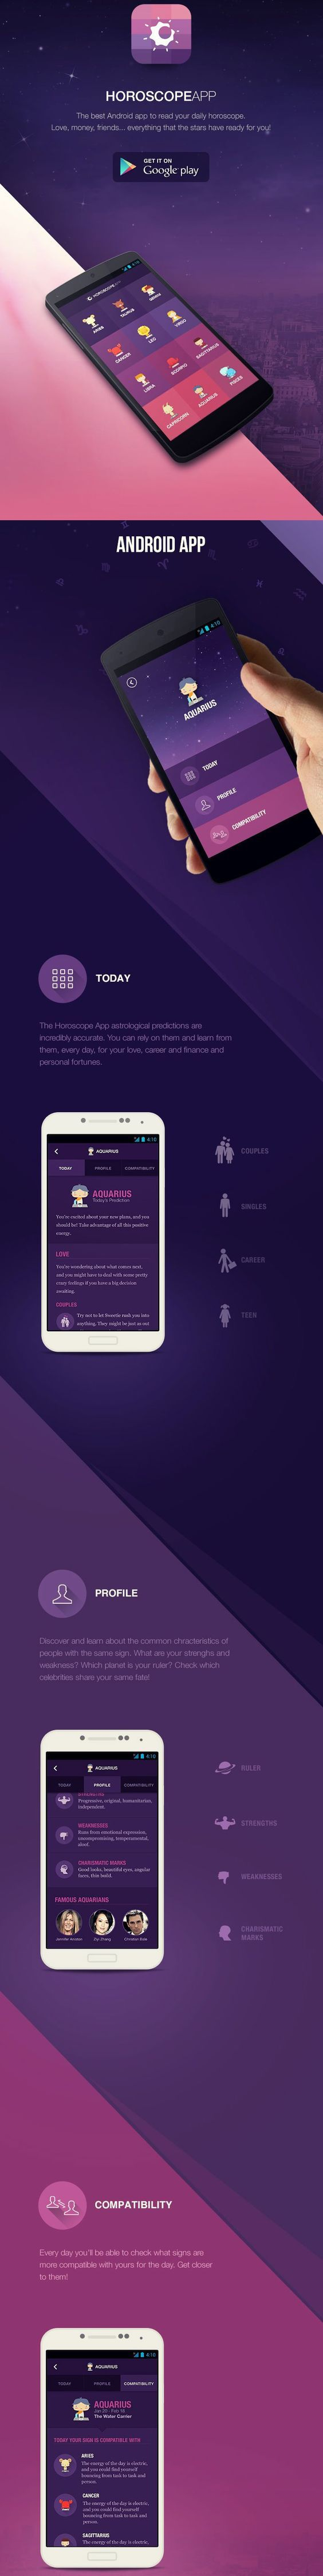 The Horoscope App android smartphone flat design: